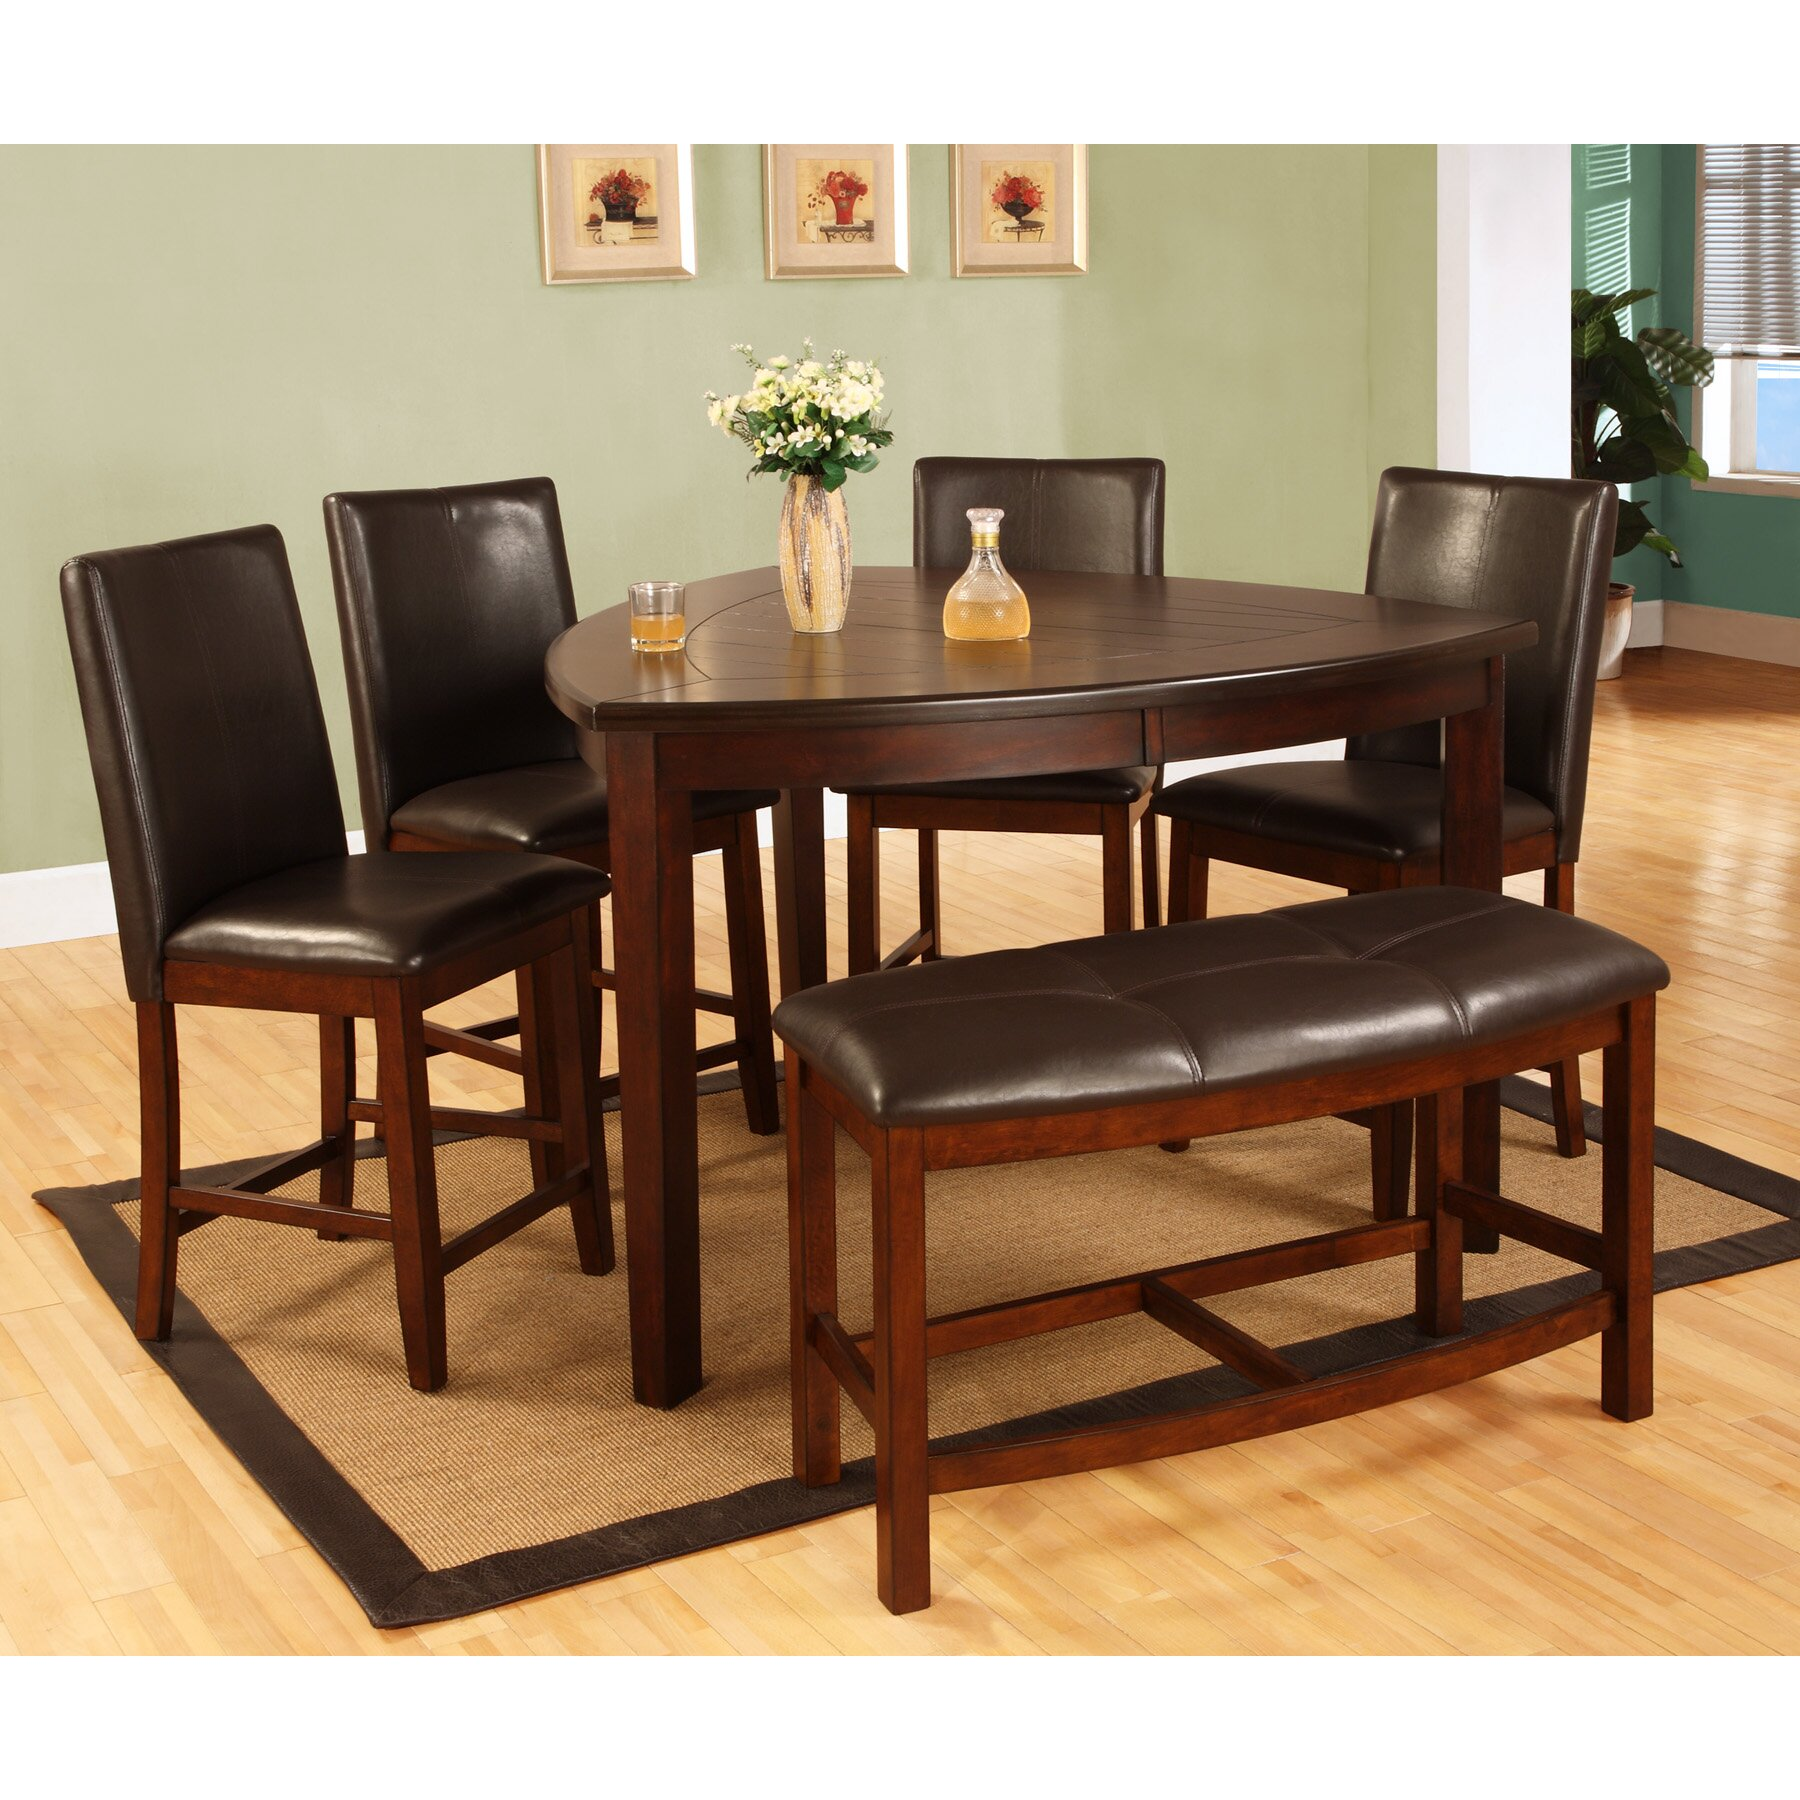 Best Quality Furniture  Piece Counter Height Dining Set  Reviews - Best quality dining room furniture